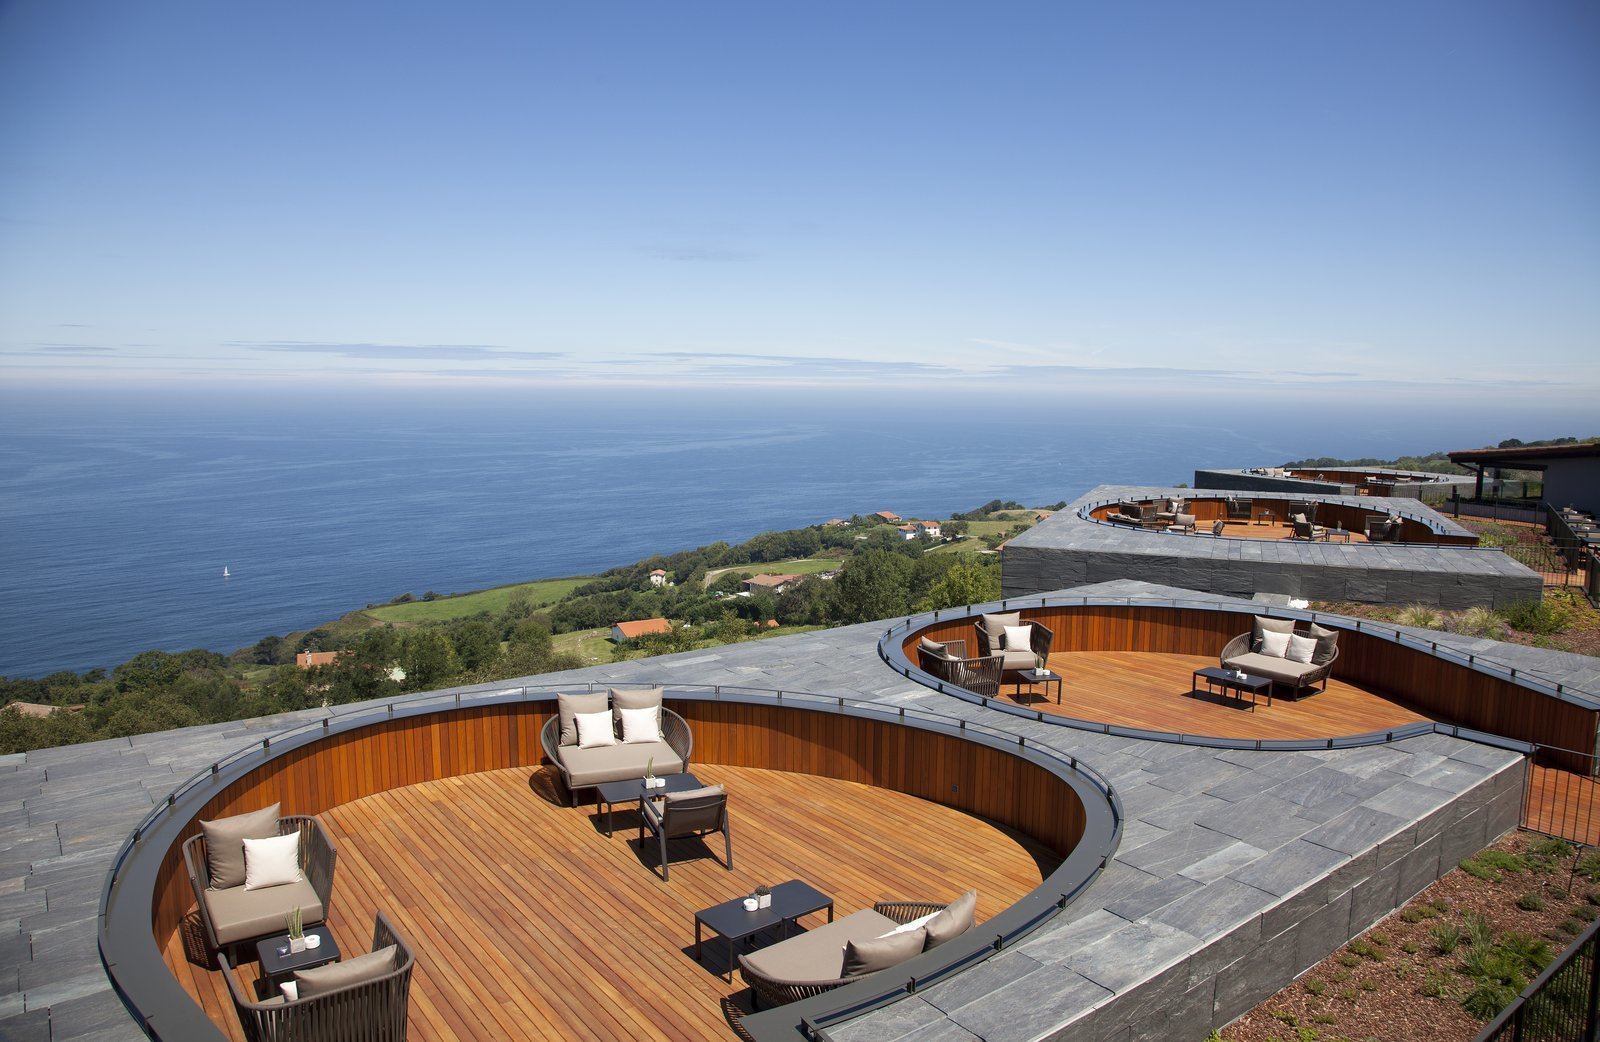 Outdoor, Decking Patio, Porch, Deck, Rooftop, and Wood Patio, Porch, Deck Six slightly sunken decks reminiscent of cozy conversation pits have form common outdoor space.  Photo 3 of 13 in Spain's Basque Coast Gets a New Modern Hotel With a Michelin-Starred Restaurant